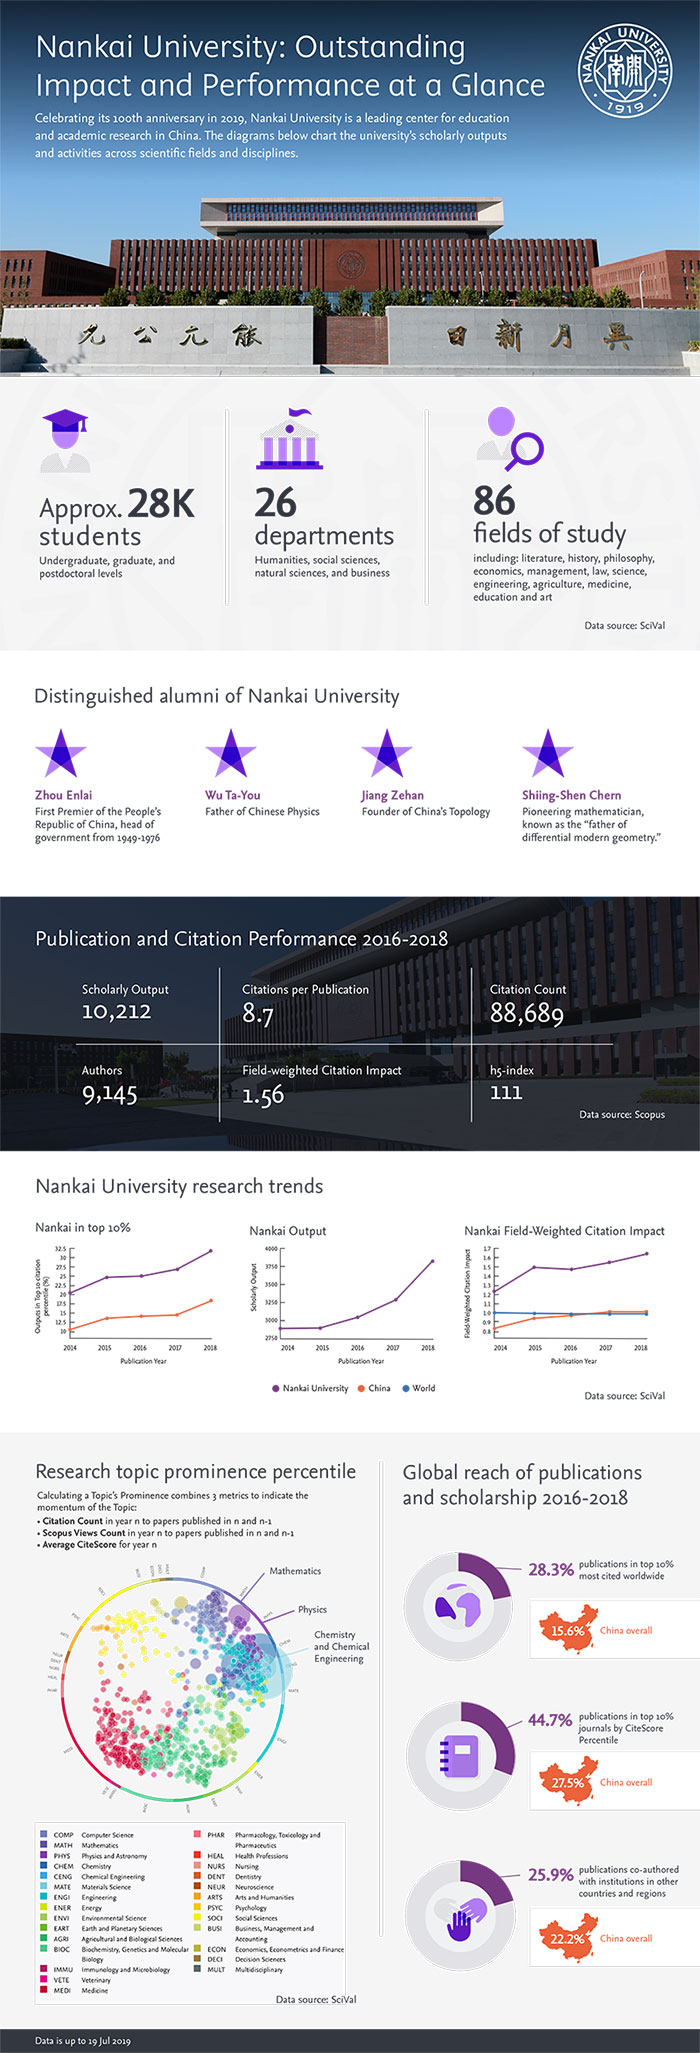 Nankai-University--Outstanding-Impact-and-Performance-at-a-Glance